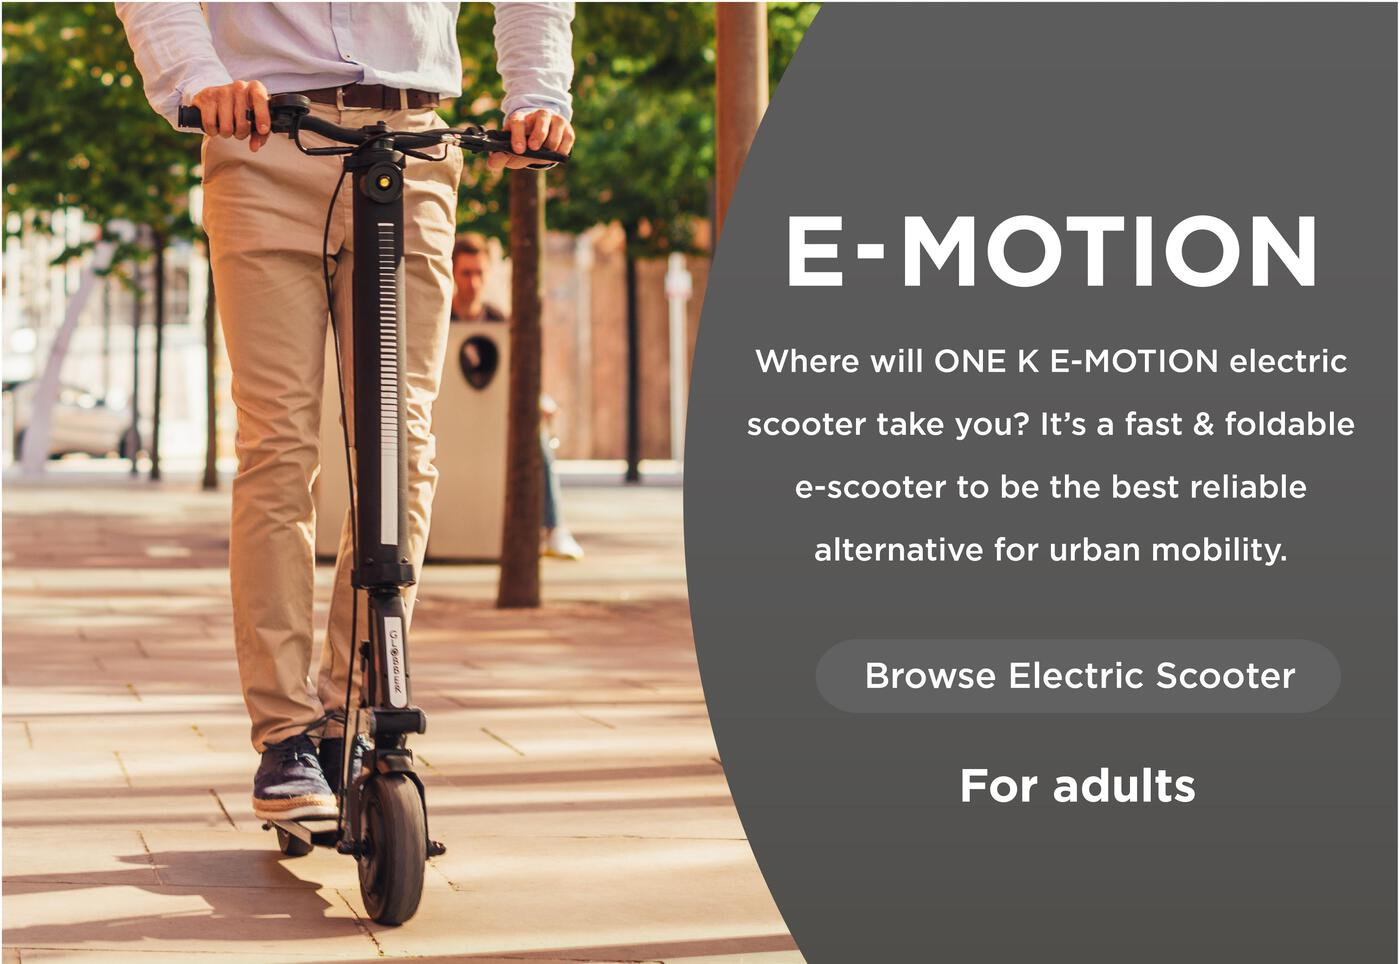 Where will ONE K E-MOTION electric scooter take you? It's a fast & foldable e-scooter to be the best reliable alternative for urban mobility.  #11 - Accessories for kids, teens & adults.